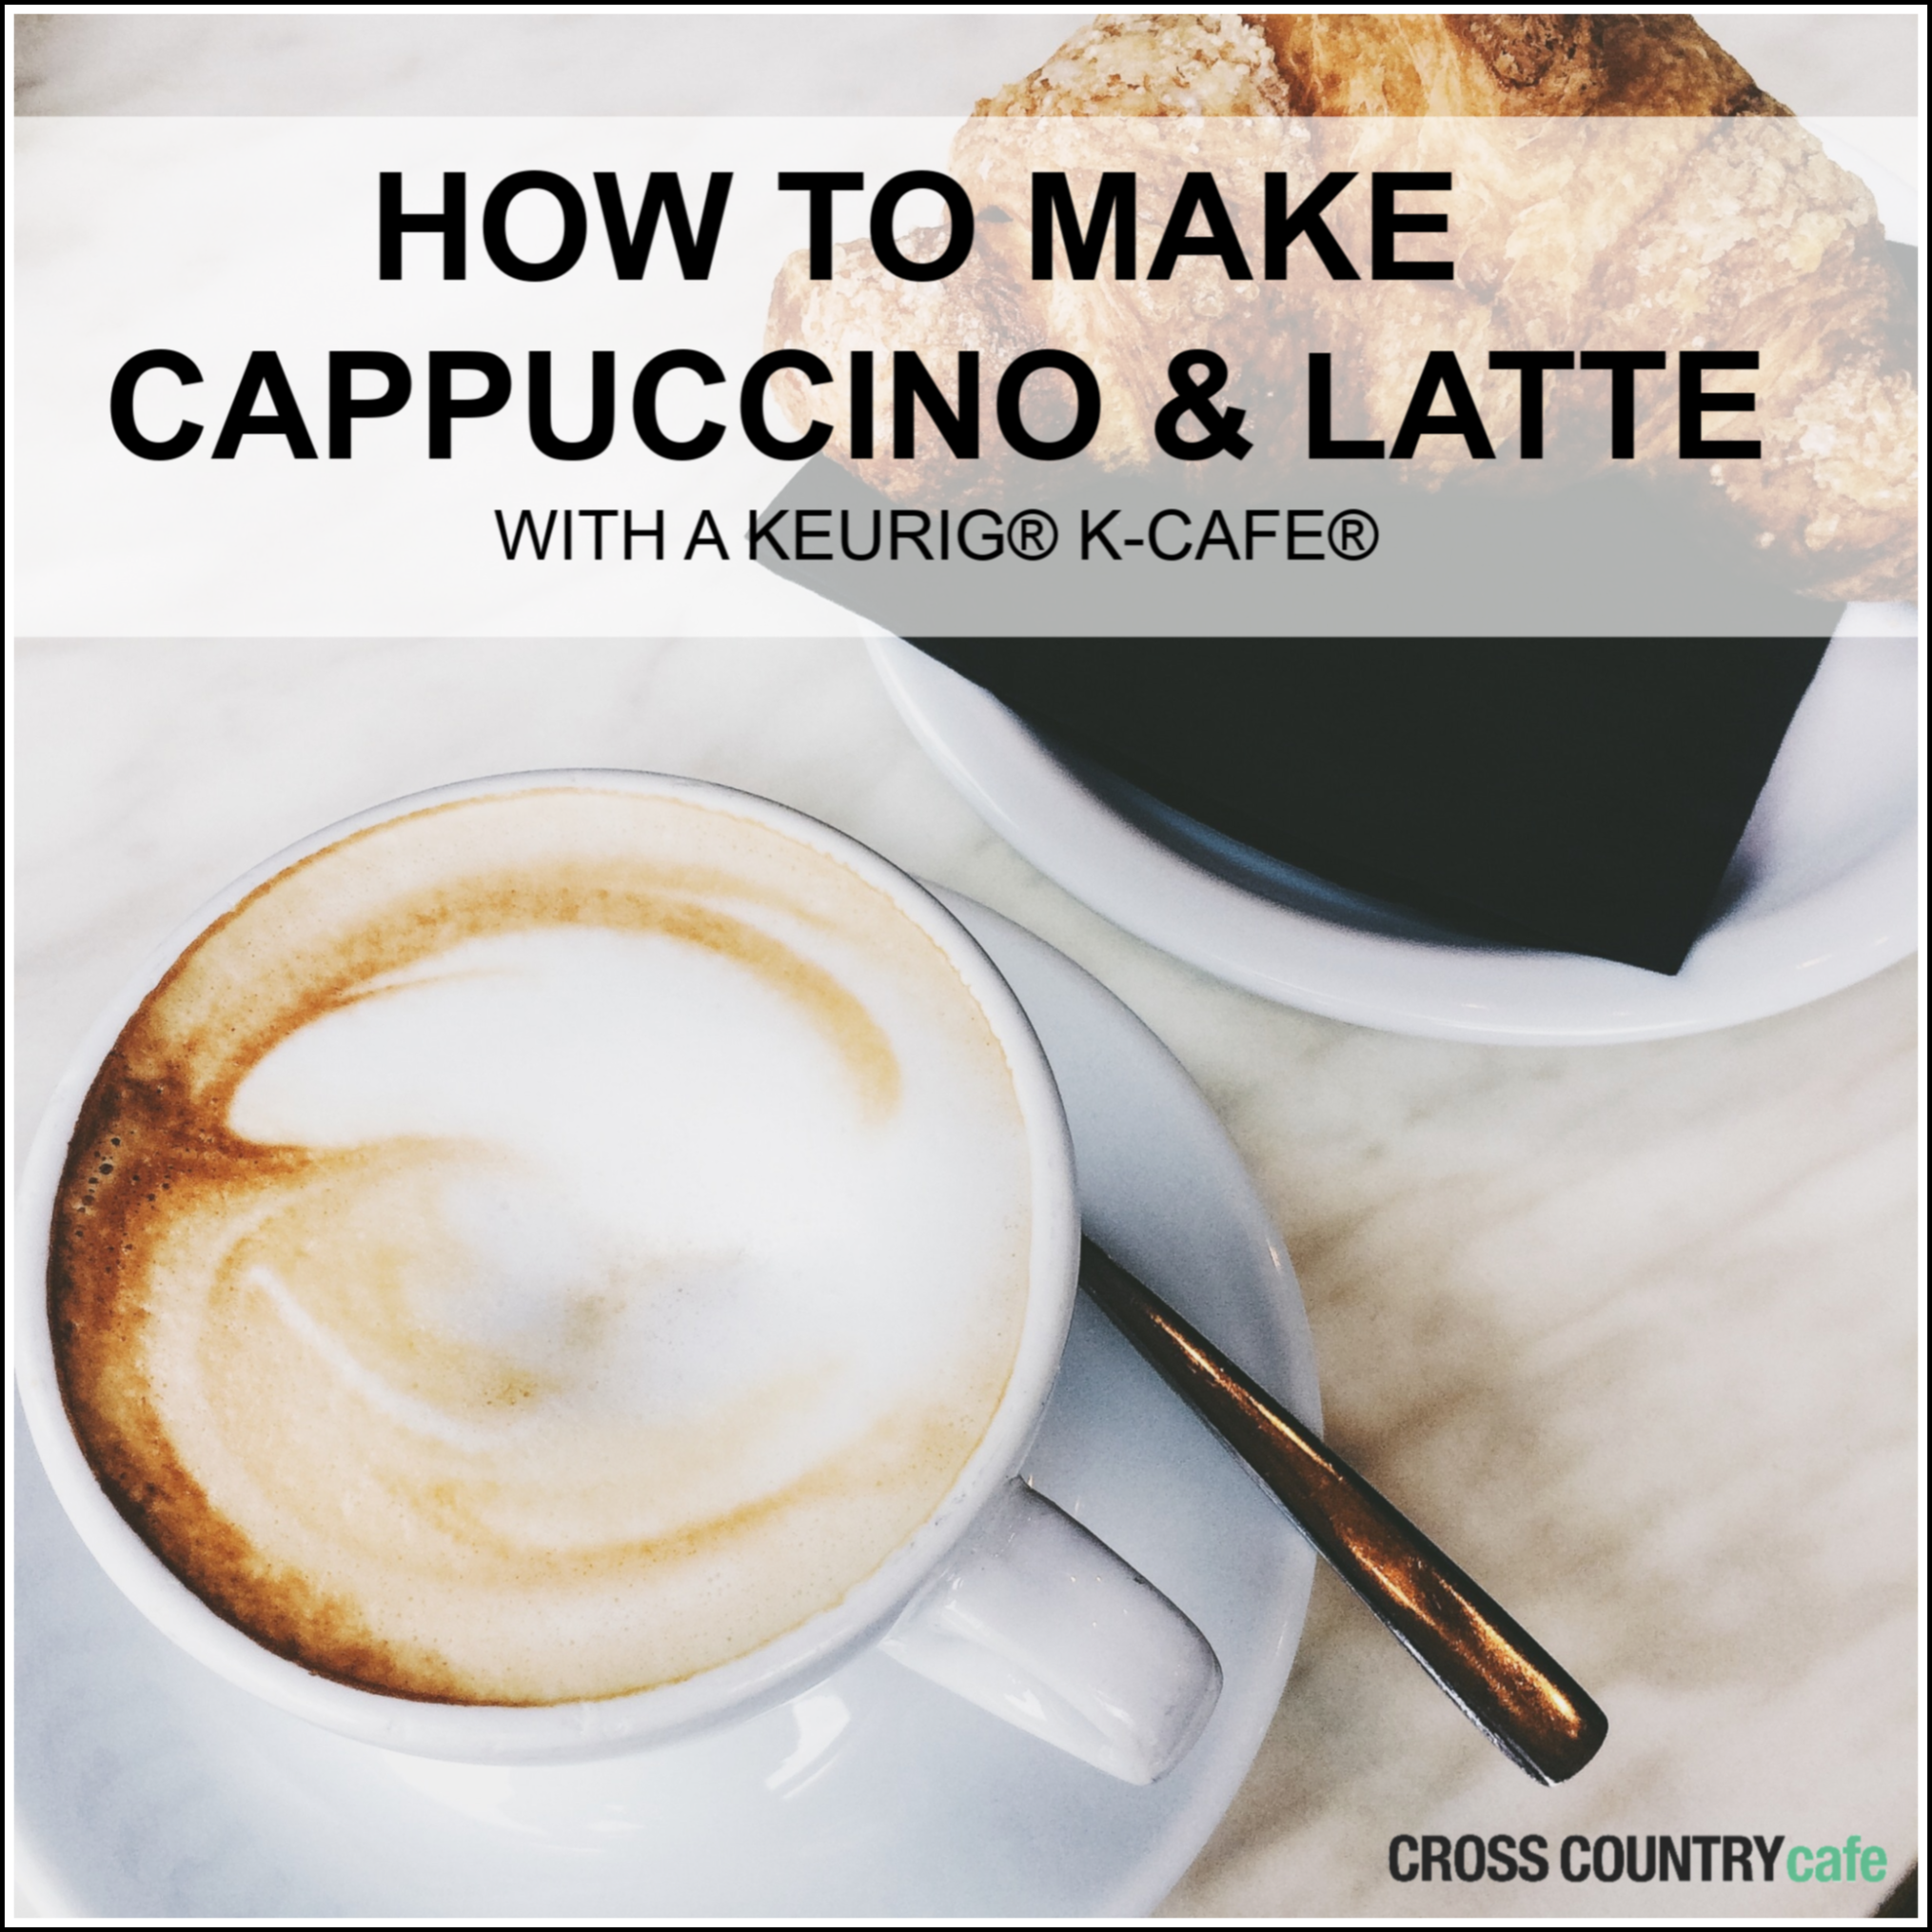 How To Make Latte And Cappuccino With A Keurig® K-Cafe